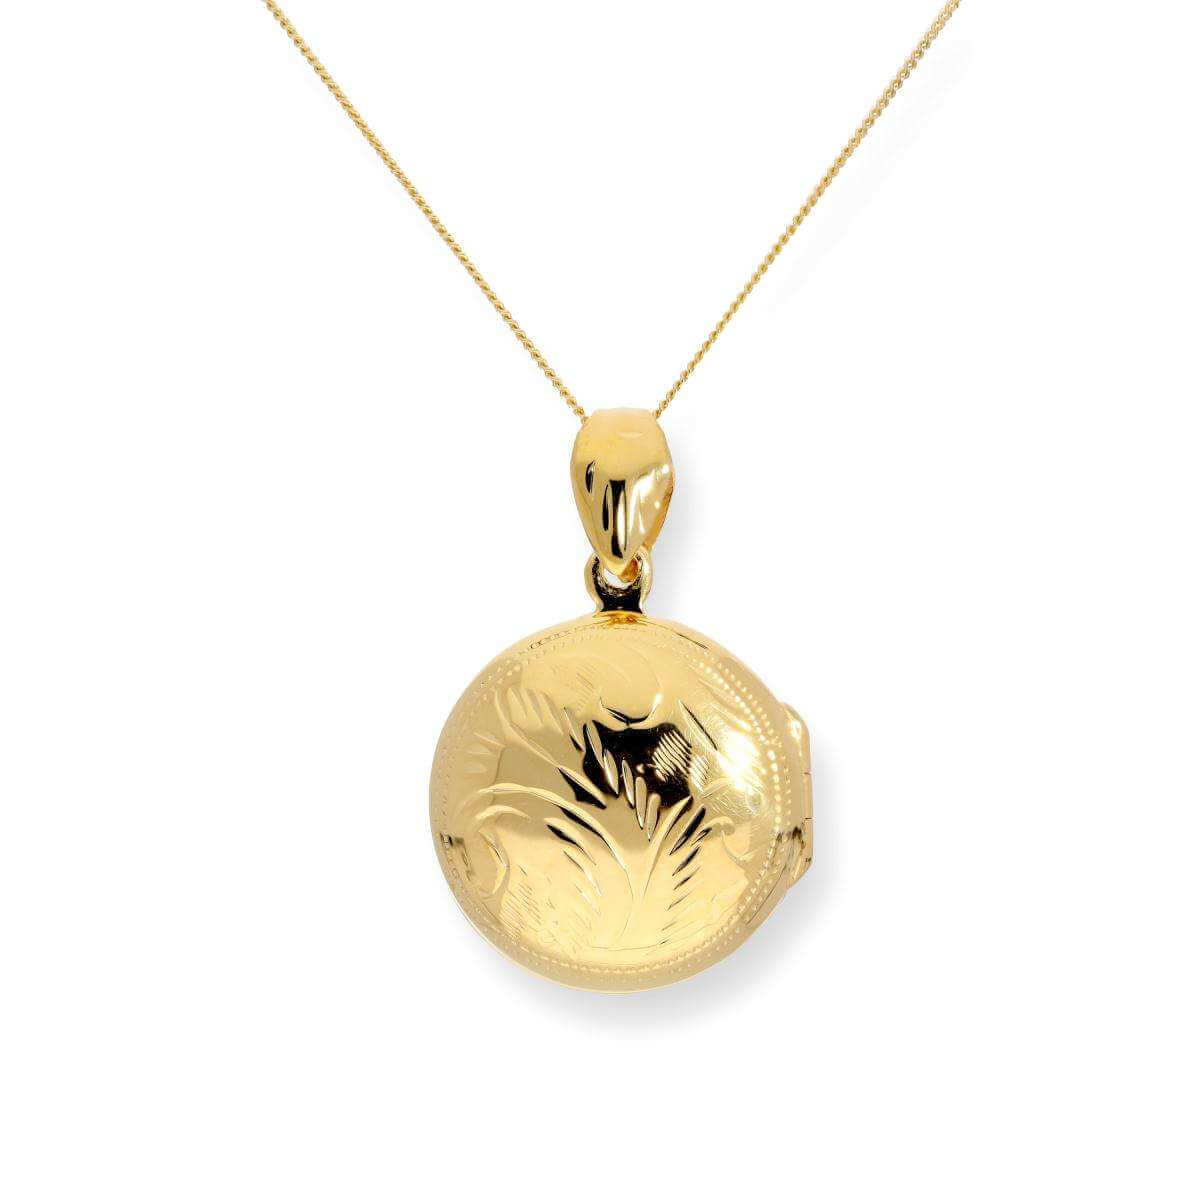 Gold Plated Sterling Silver Engraved Round Locket on Chain 16 - 22 Inches